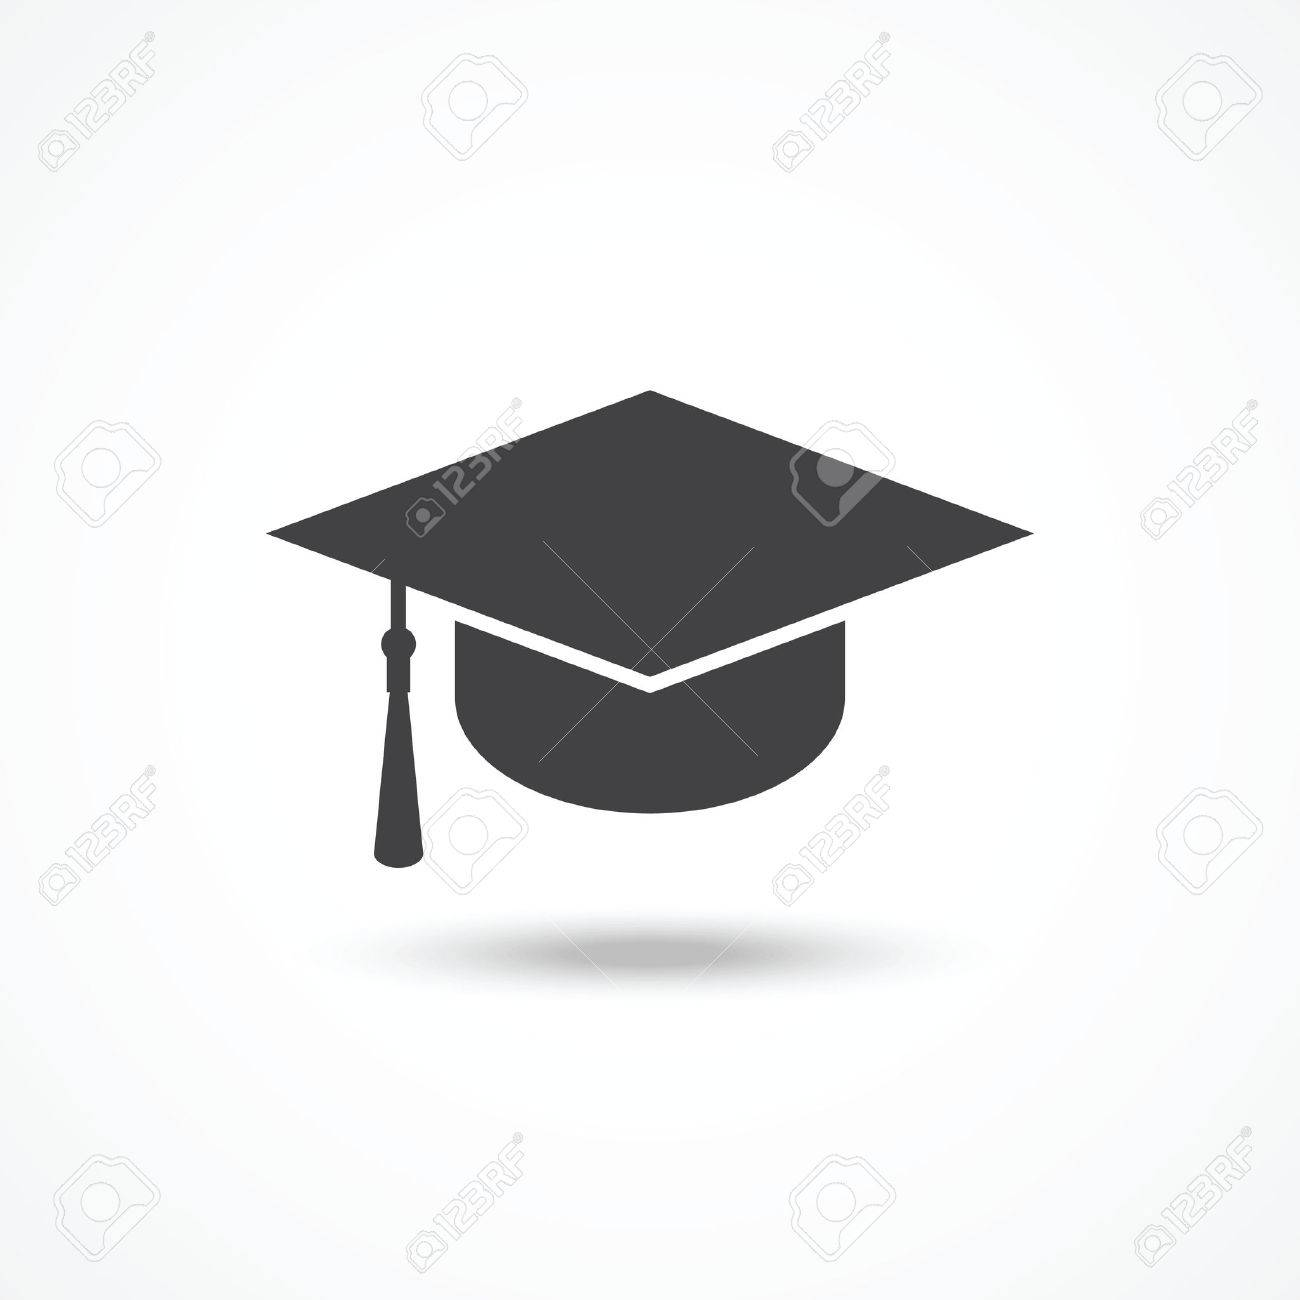 grad stock photos royalty free grad images and pictures